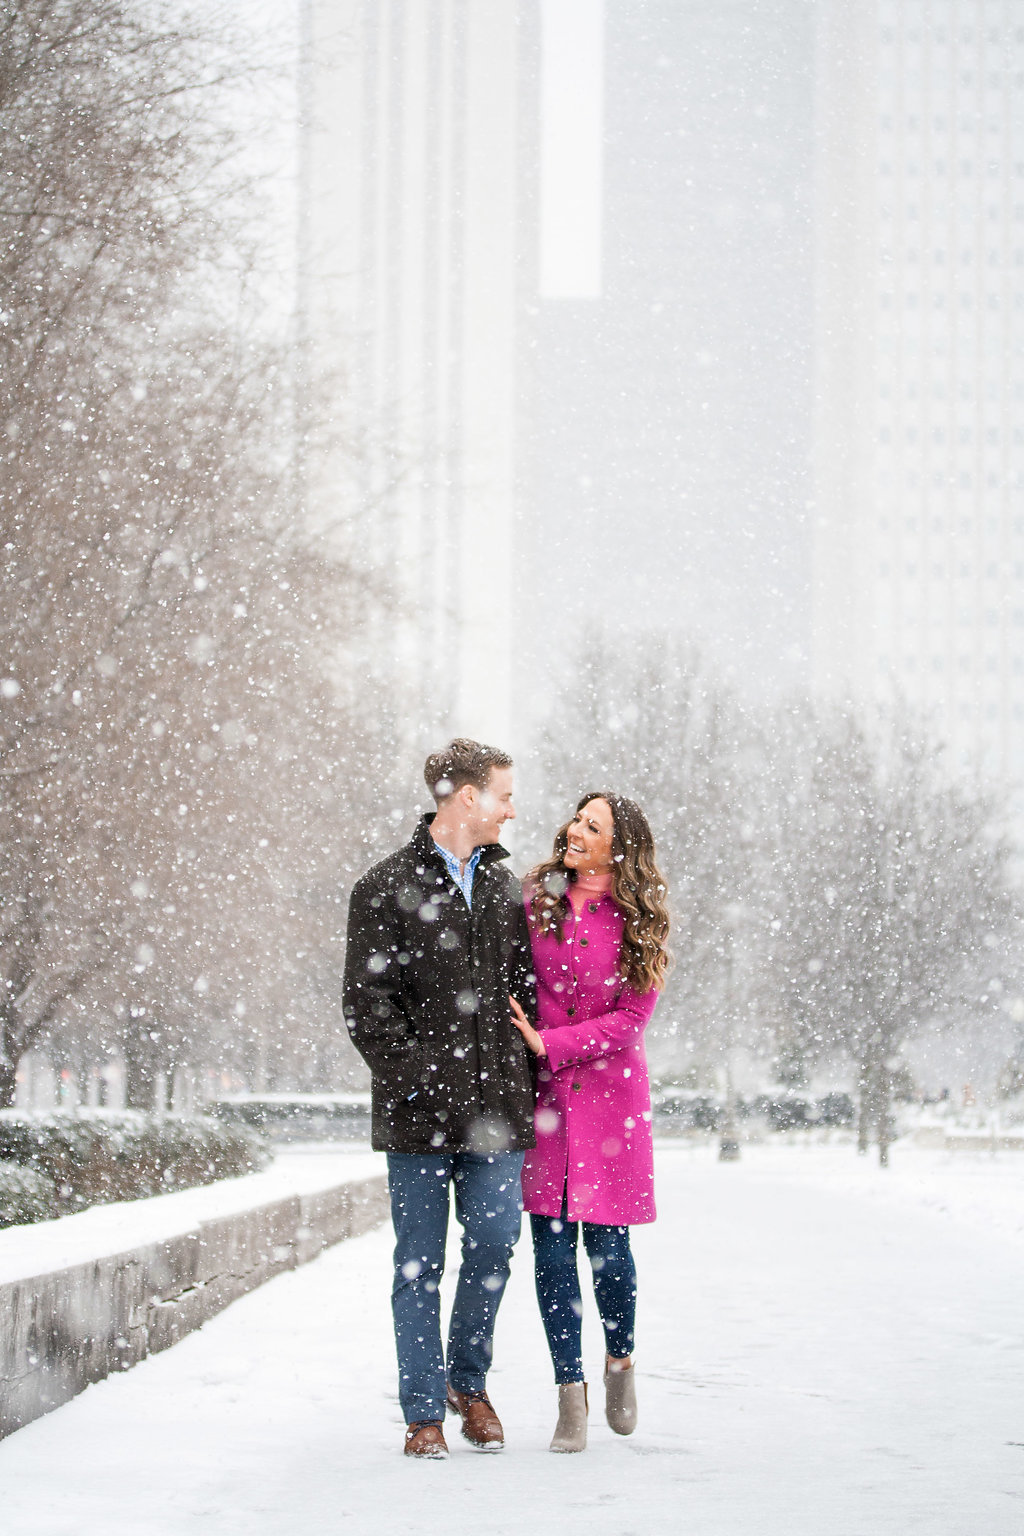 Millennium Park Chicago Illinois Winter Engagement Photographer Taylor Ingles 14